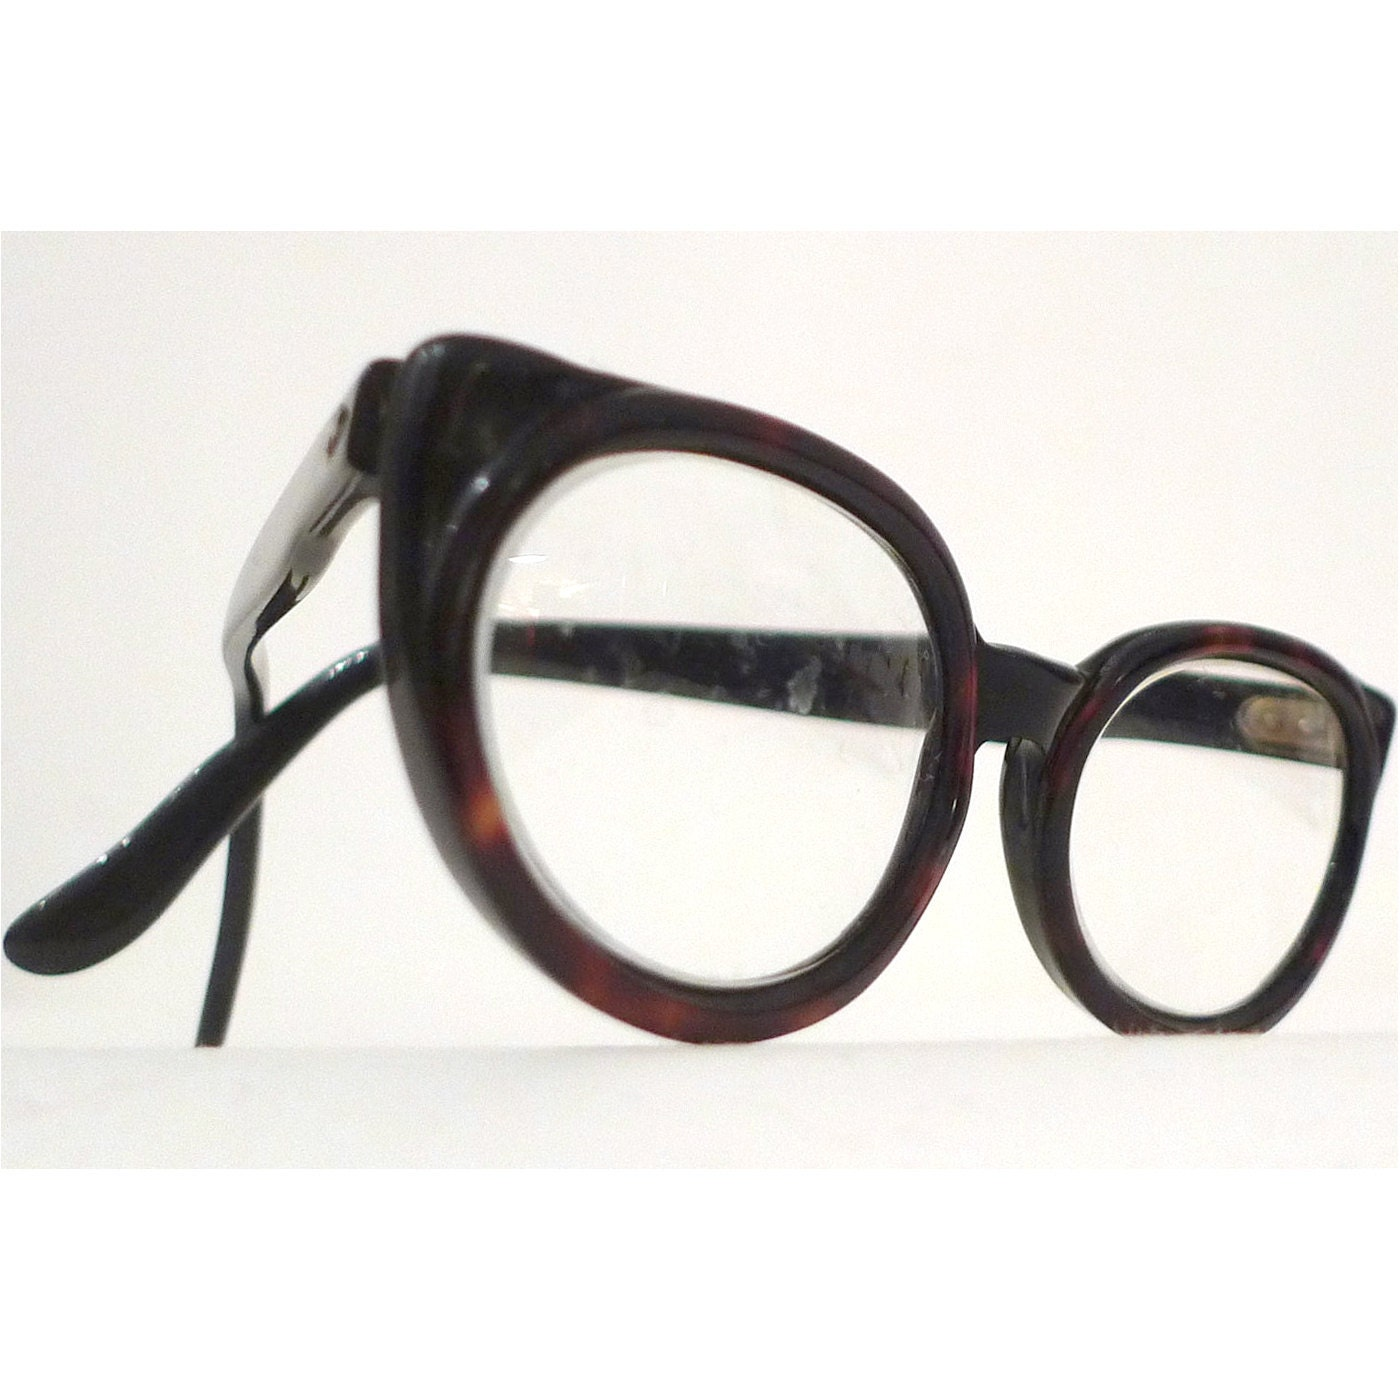 oval in a cat tortoise shell eyeglass frames brown and black